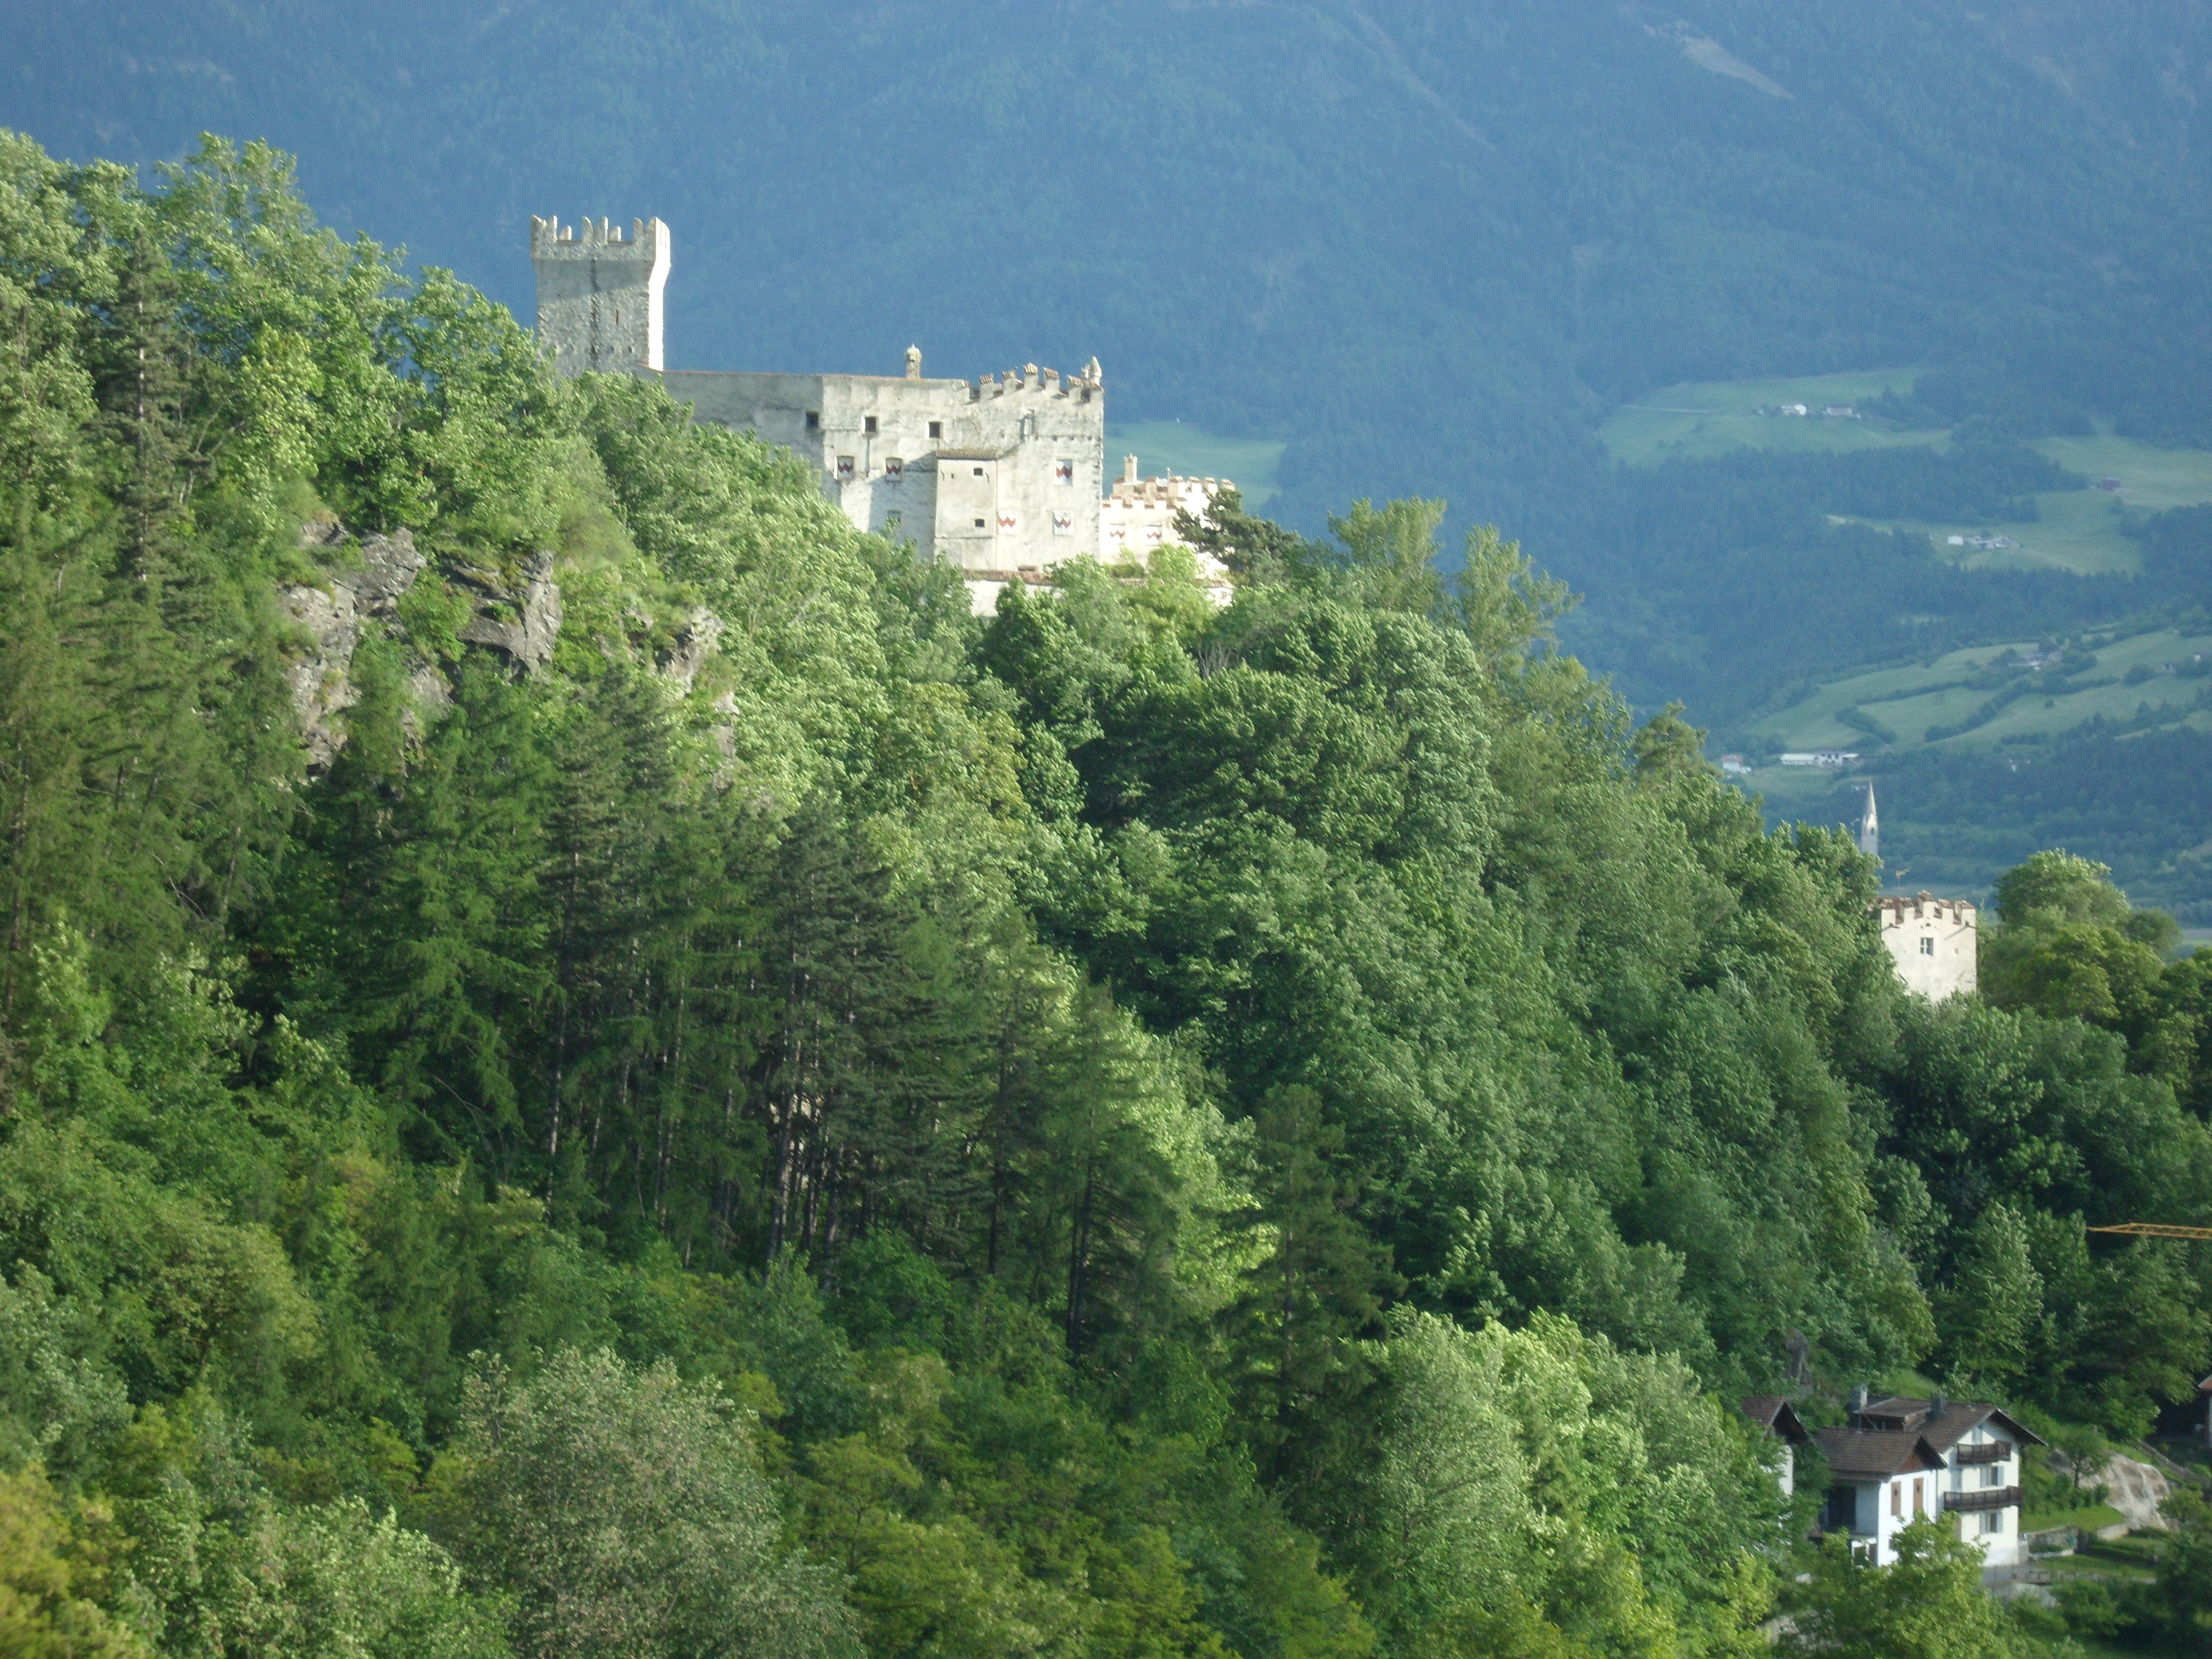 White stone castle with a tall battlemented keep on a wooded hillside